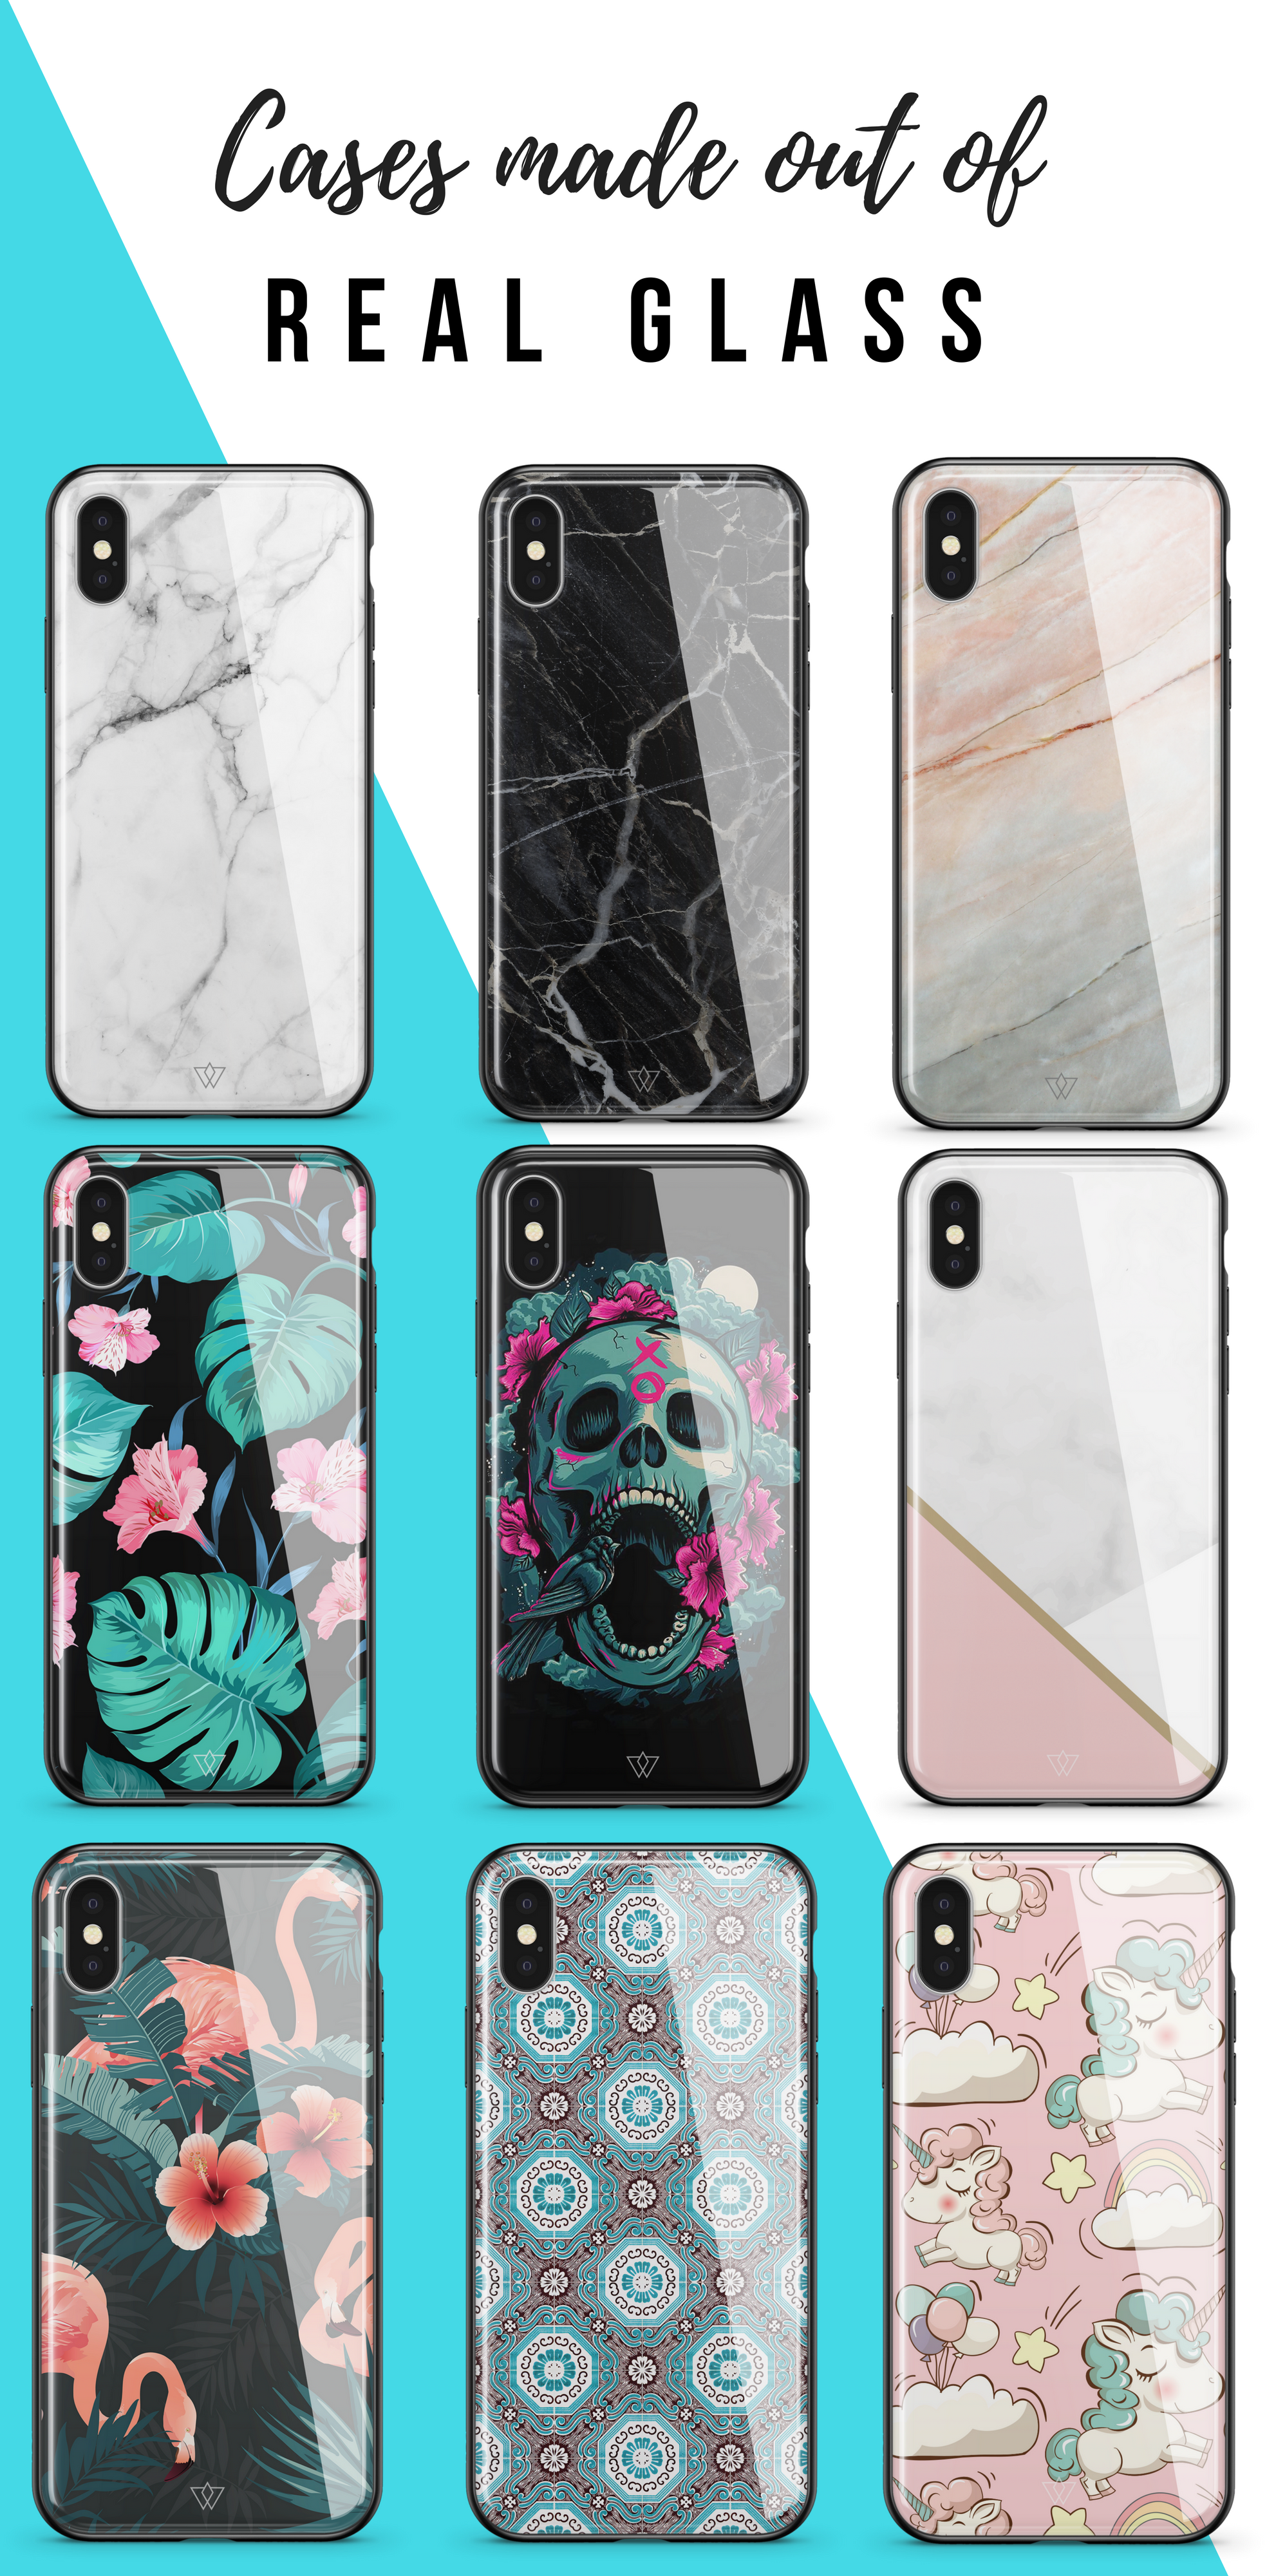 [50% OFF - £19.95] Cases made out of REAL GLASS: Available for All iPhone  Models. Designed in London, all unique designs are carefully printed  underneath